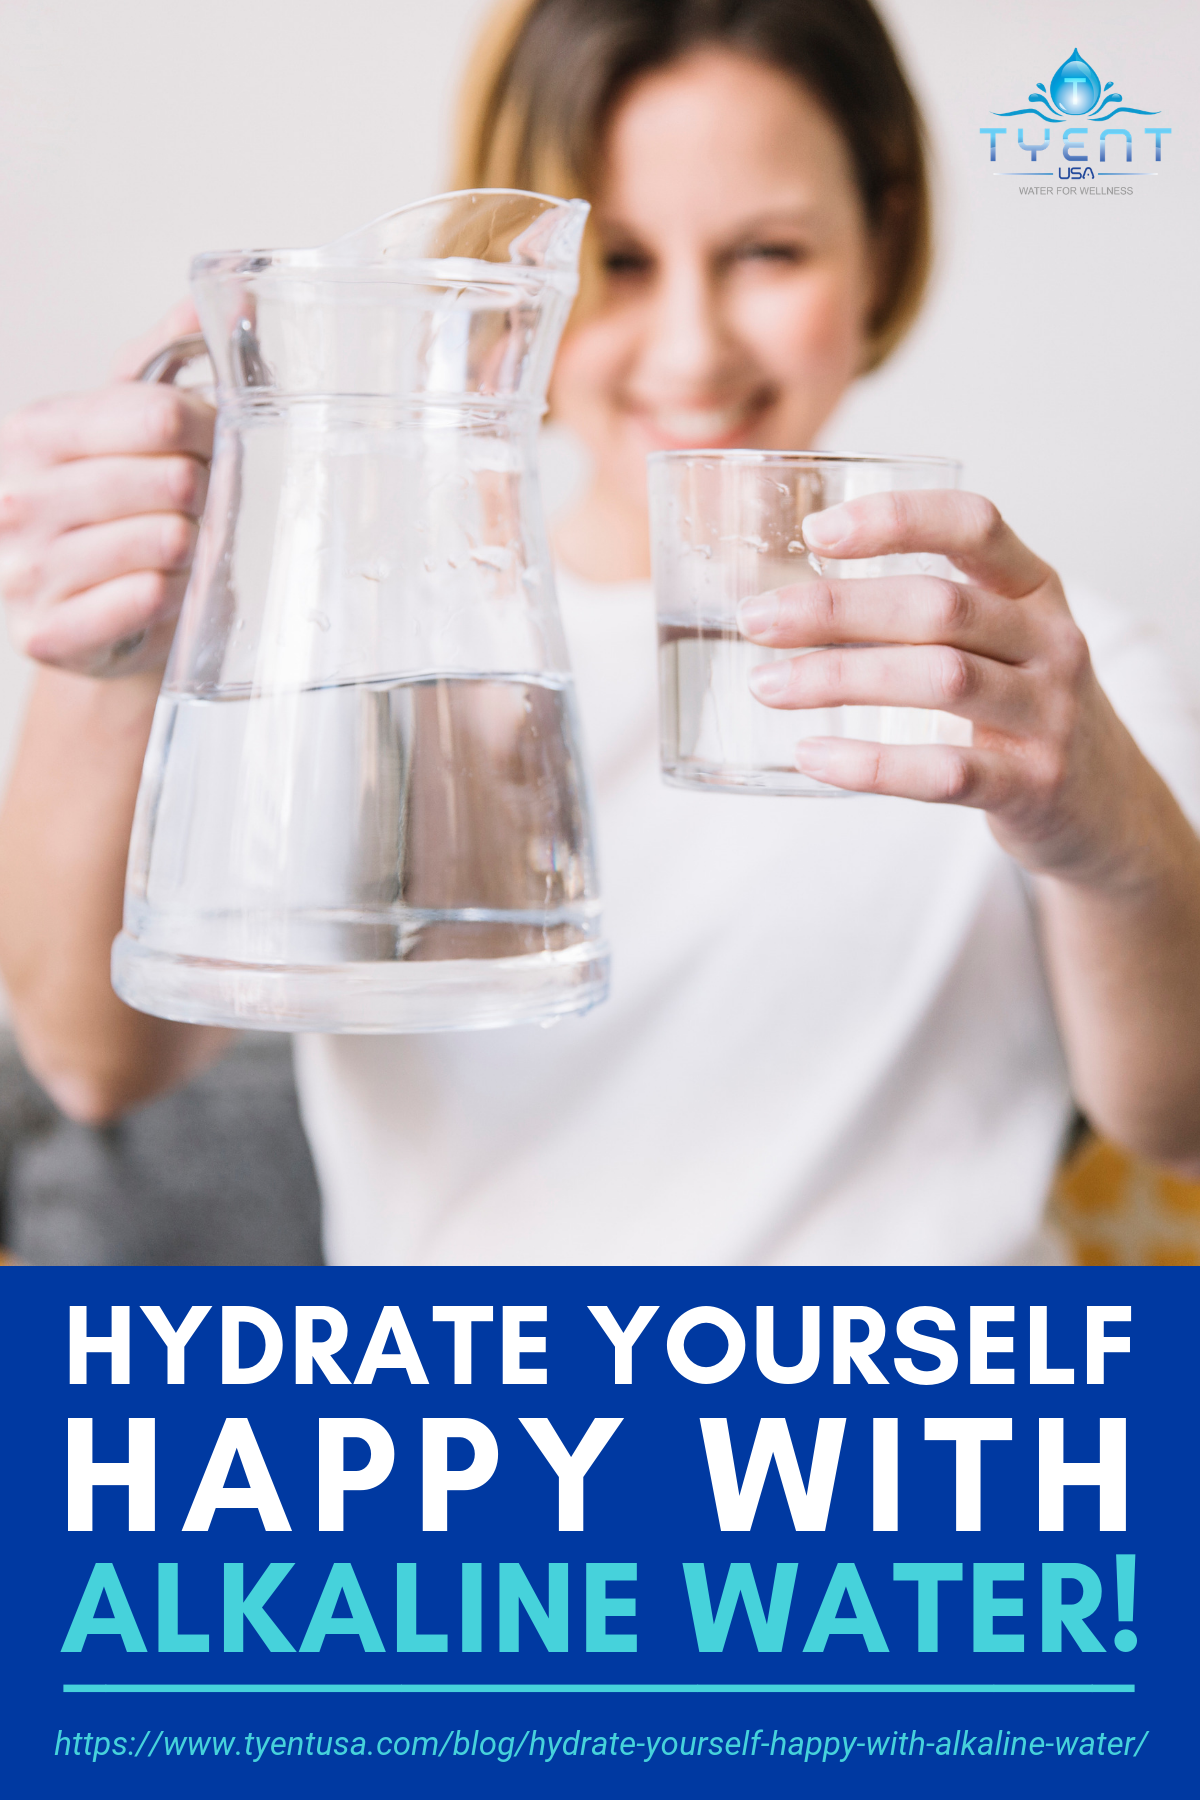 Hydrate Yourself Happy With Alkaline Water! | https://www.tyentusa.com/blog/hydrate-yourself-happy-with-alkaline-water/